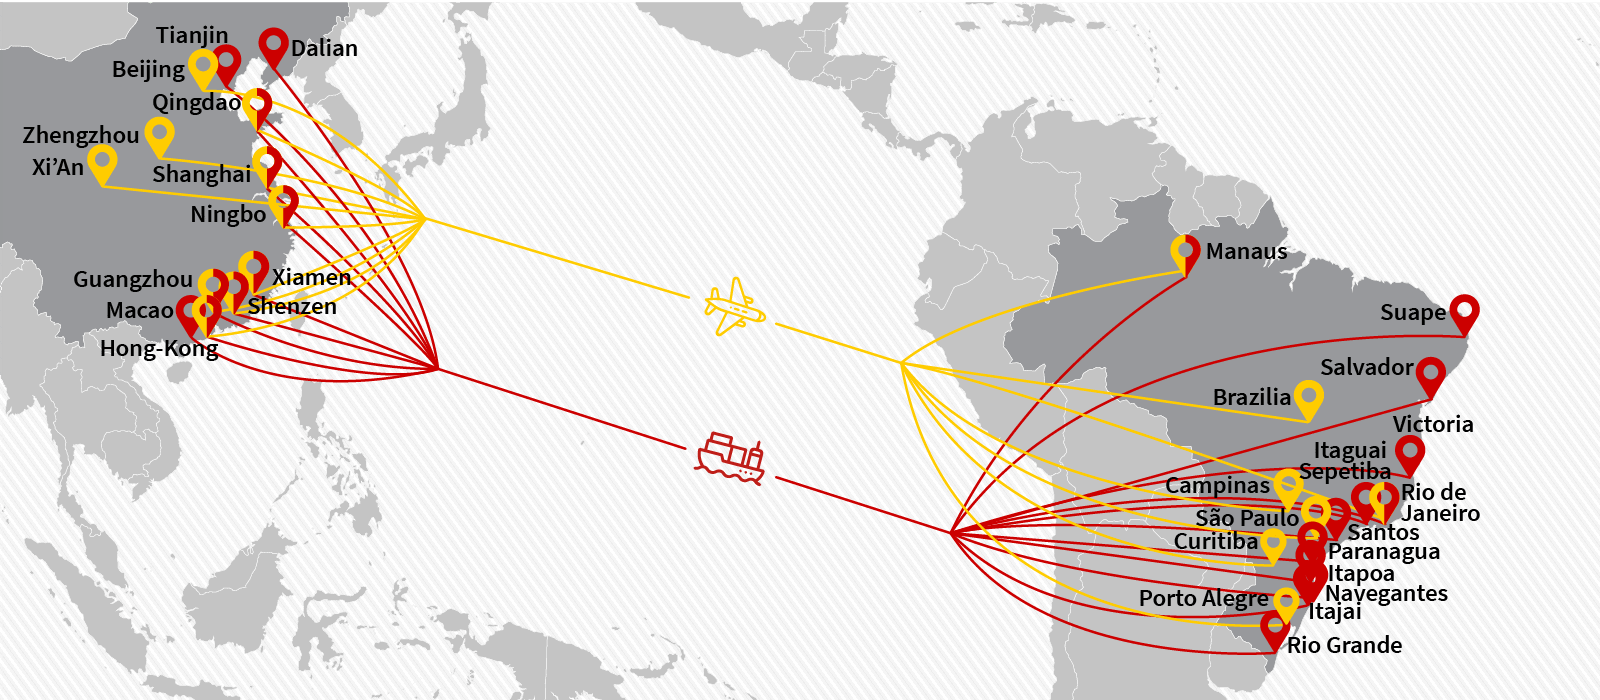 Cargo & freight shipping from China to Brazil by Air Charter or Ocean Container - Main POL, POD & Routes